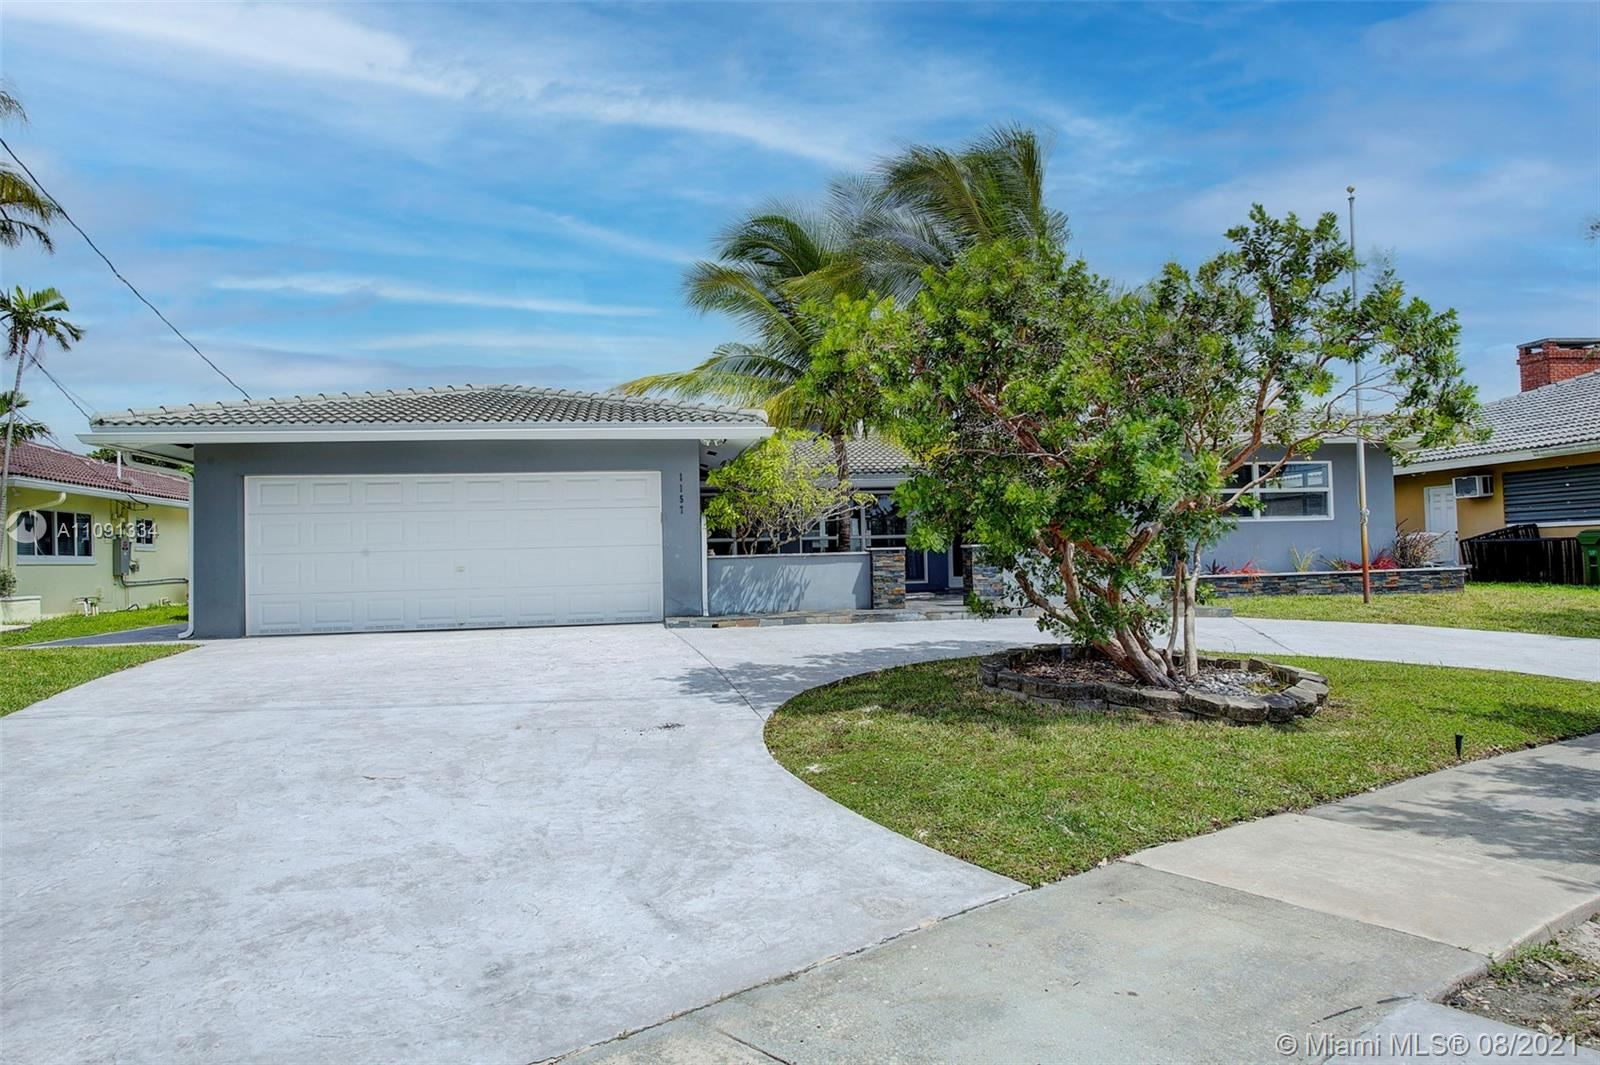 Photo of 1157 NW 30th St, Wilton Manors, FL 33311 (MLS # A11091334)